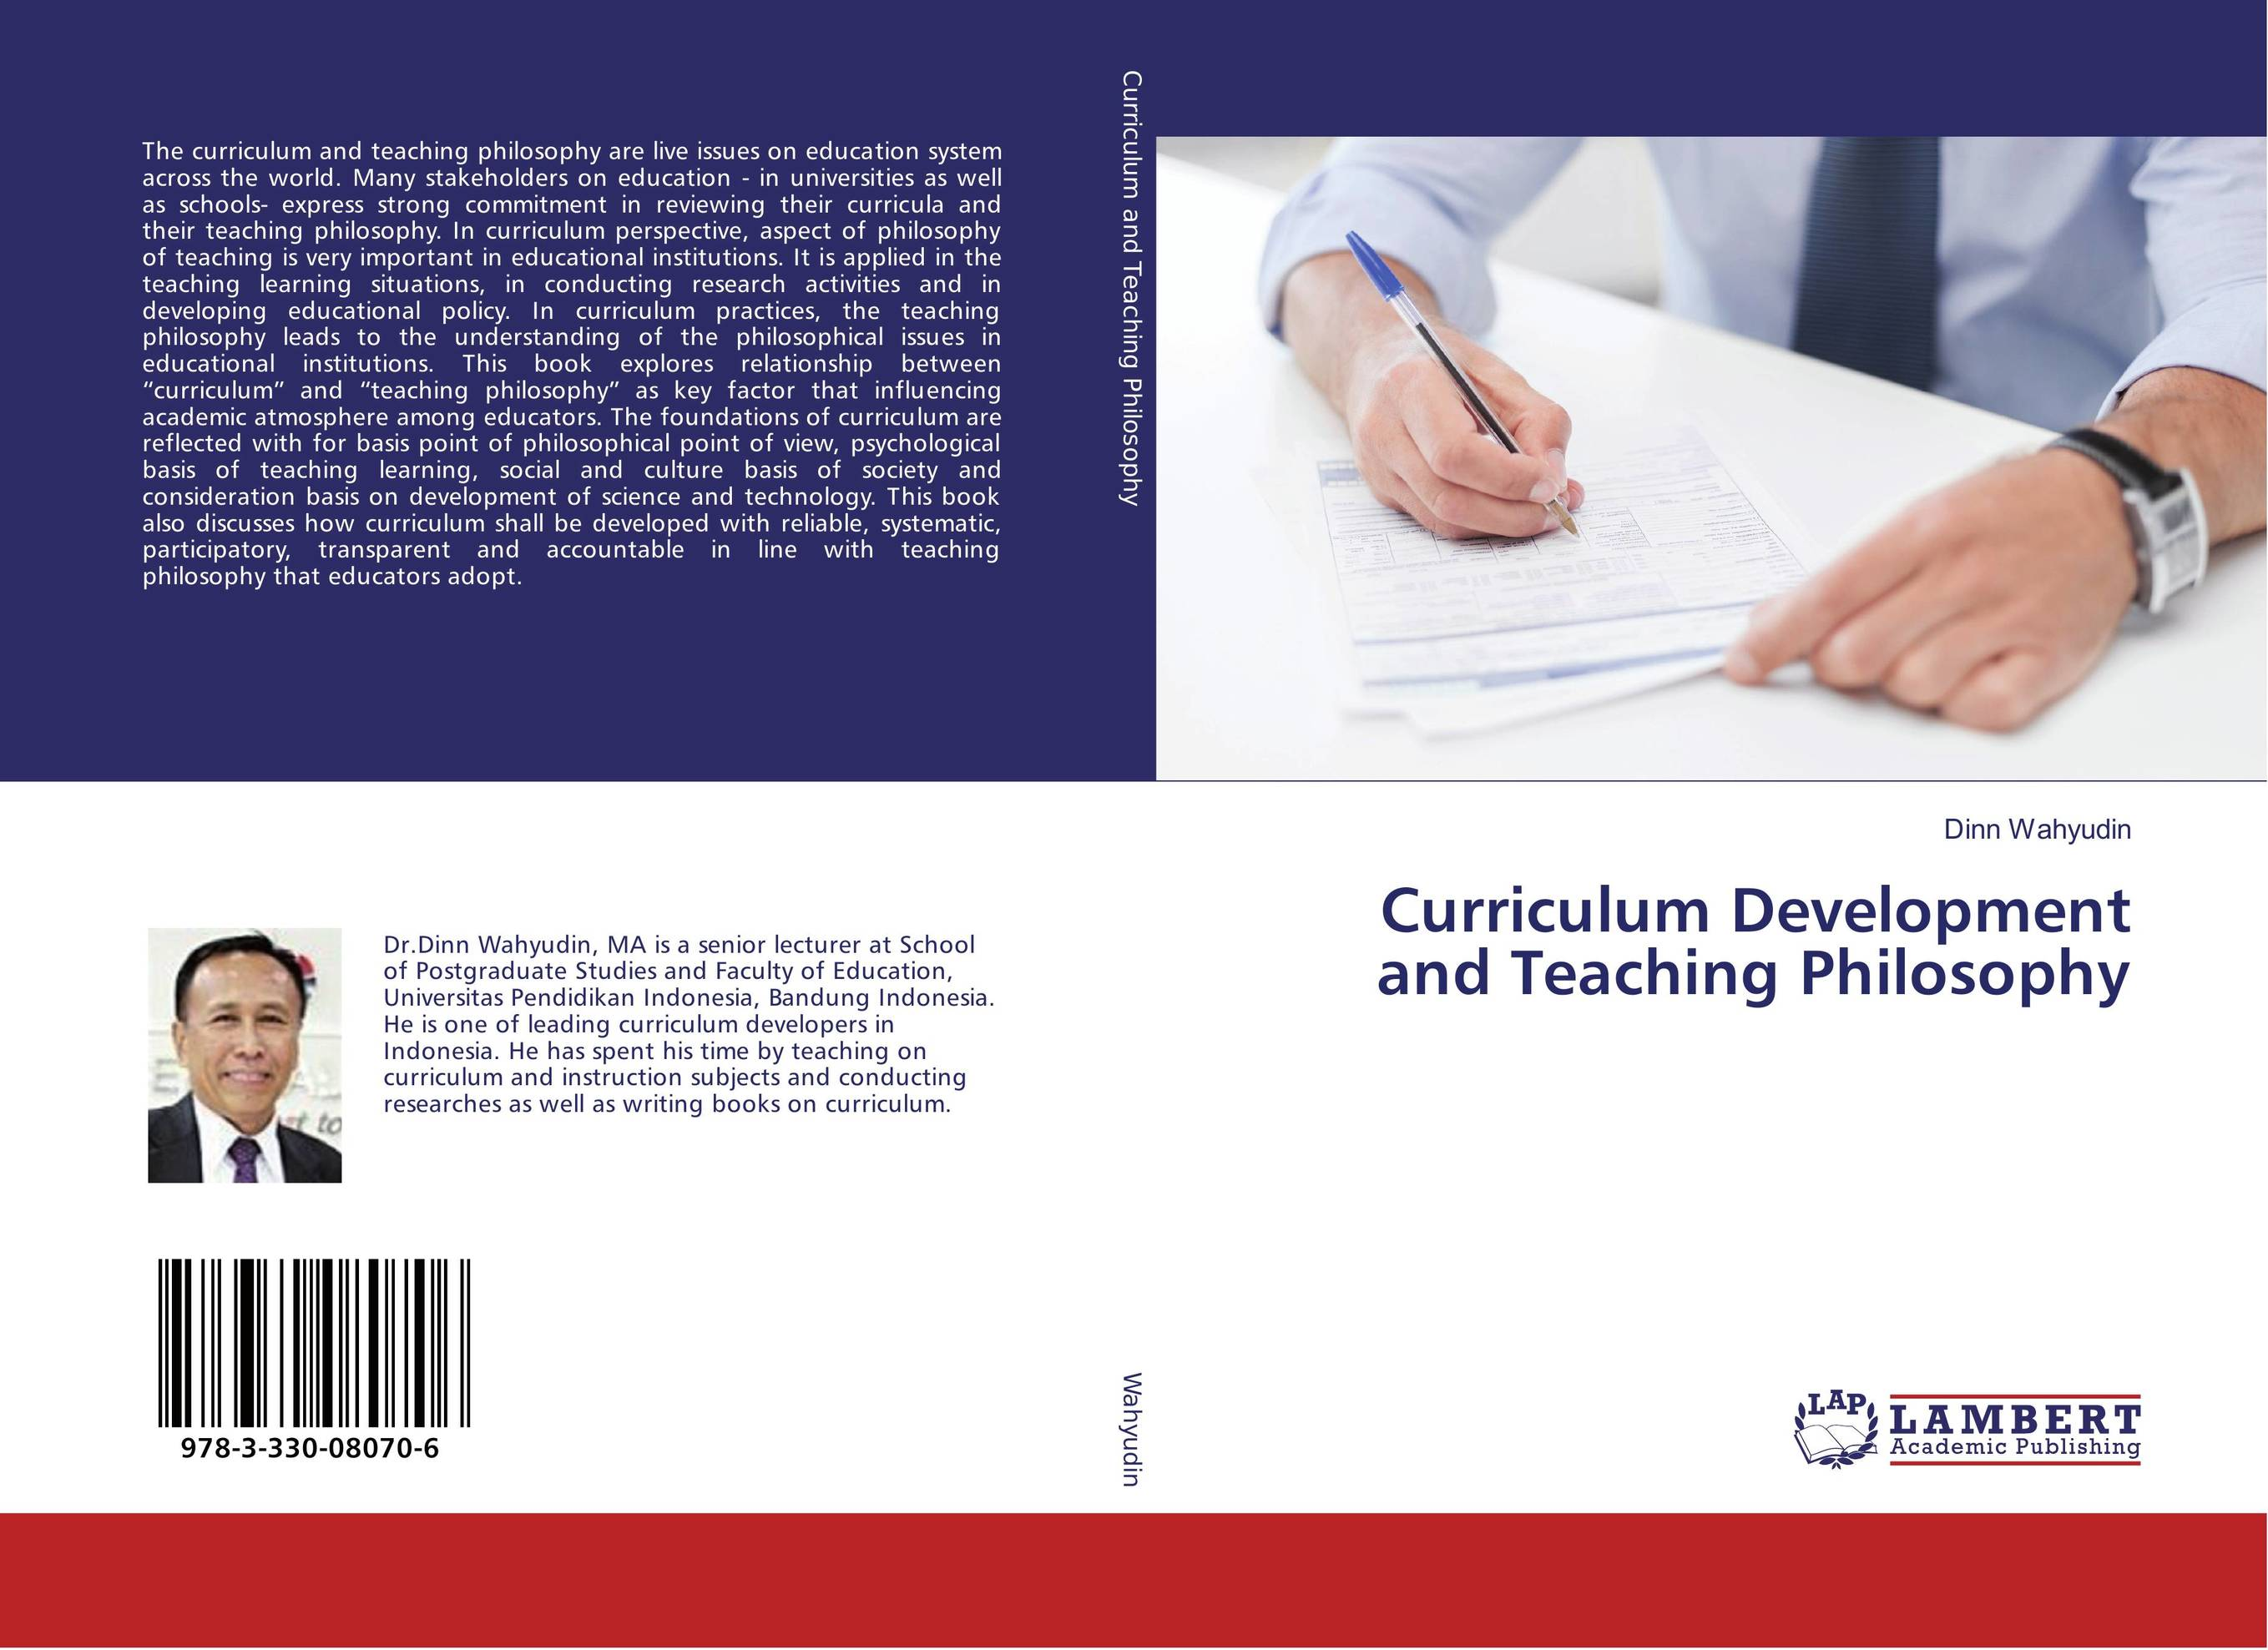 philosophy of teaching and learning At the core of my teaching style and philosophy is a concern for my students i care deeply about each and every student and strive to help all students reach their potentials both as students of mathematics and as people.